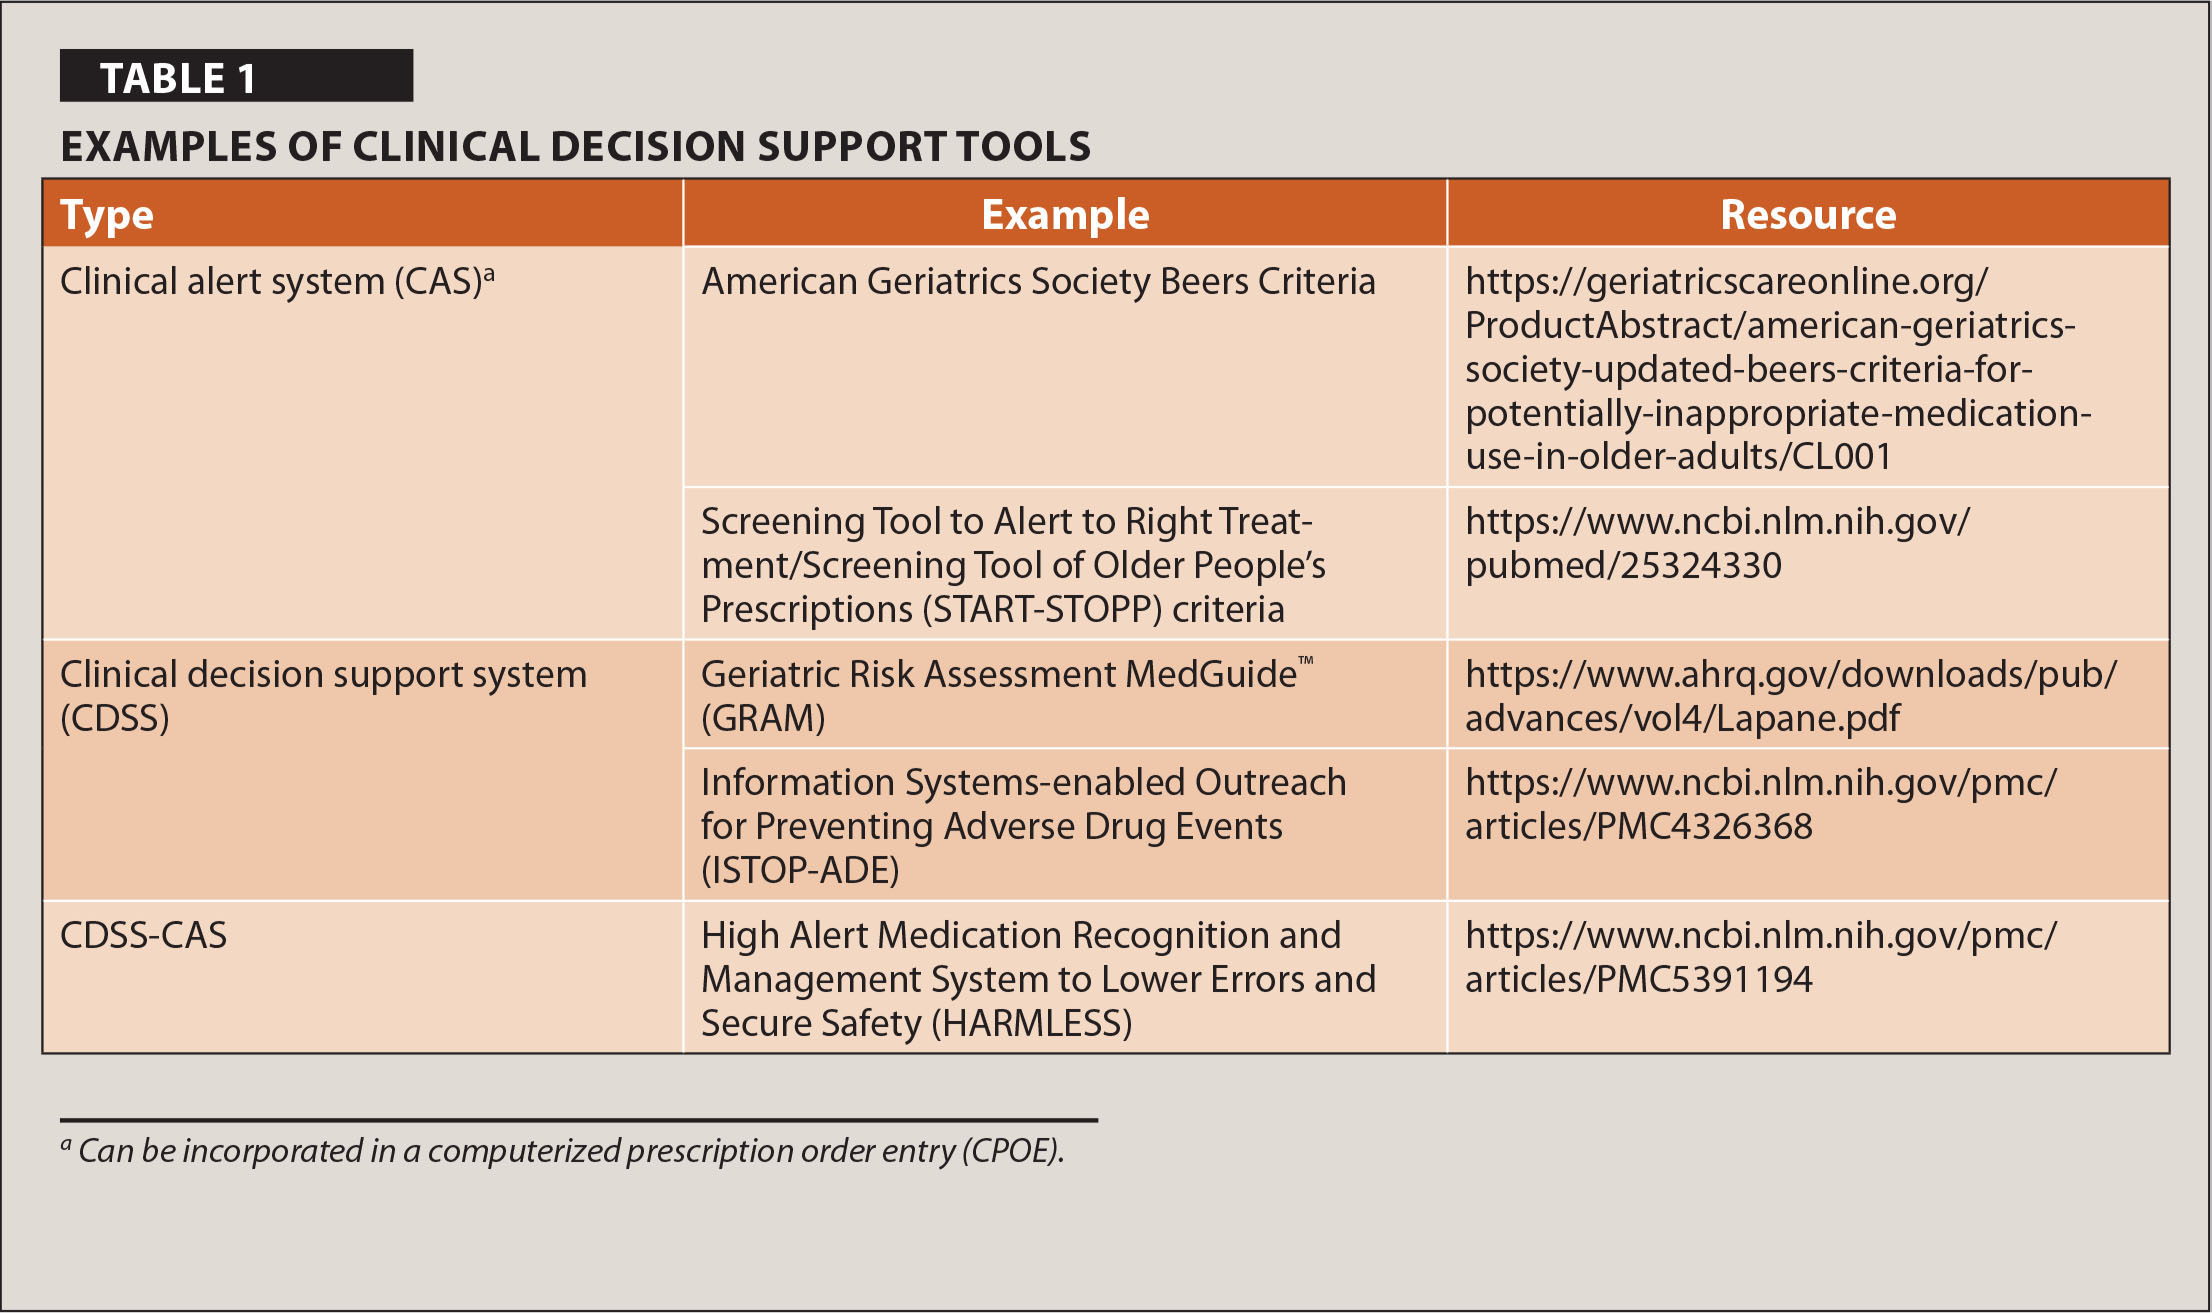 Examples of Clinical Decision Support Tools